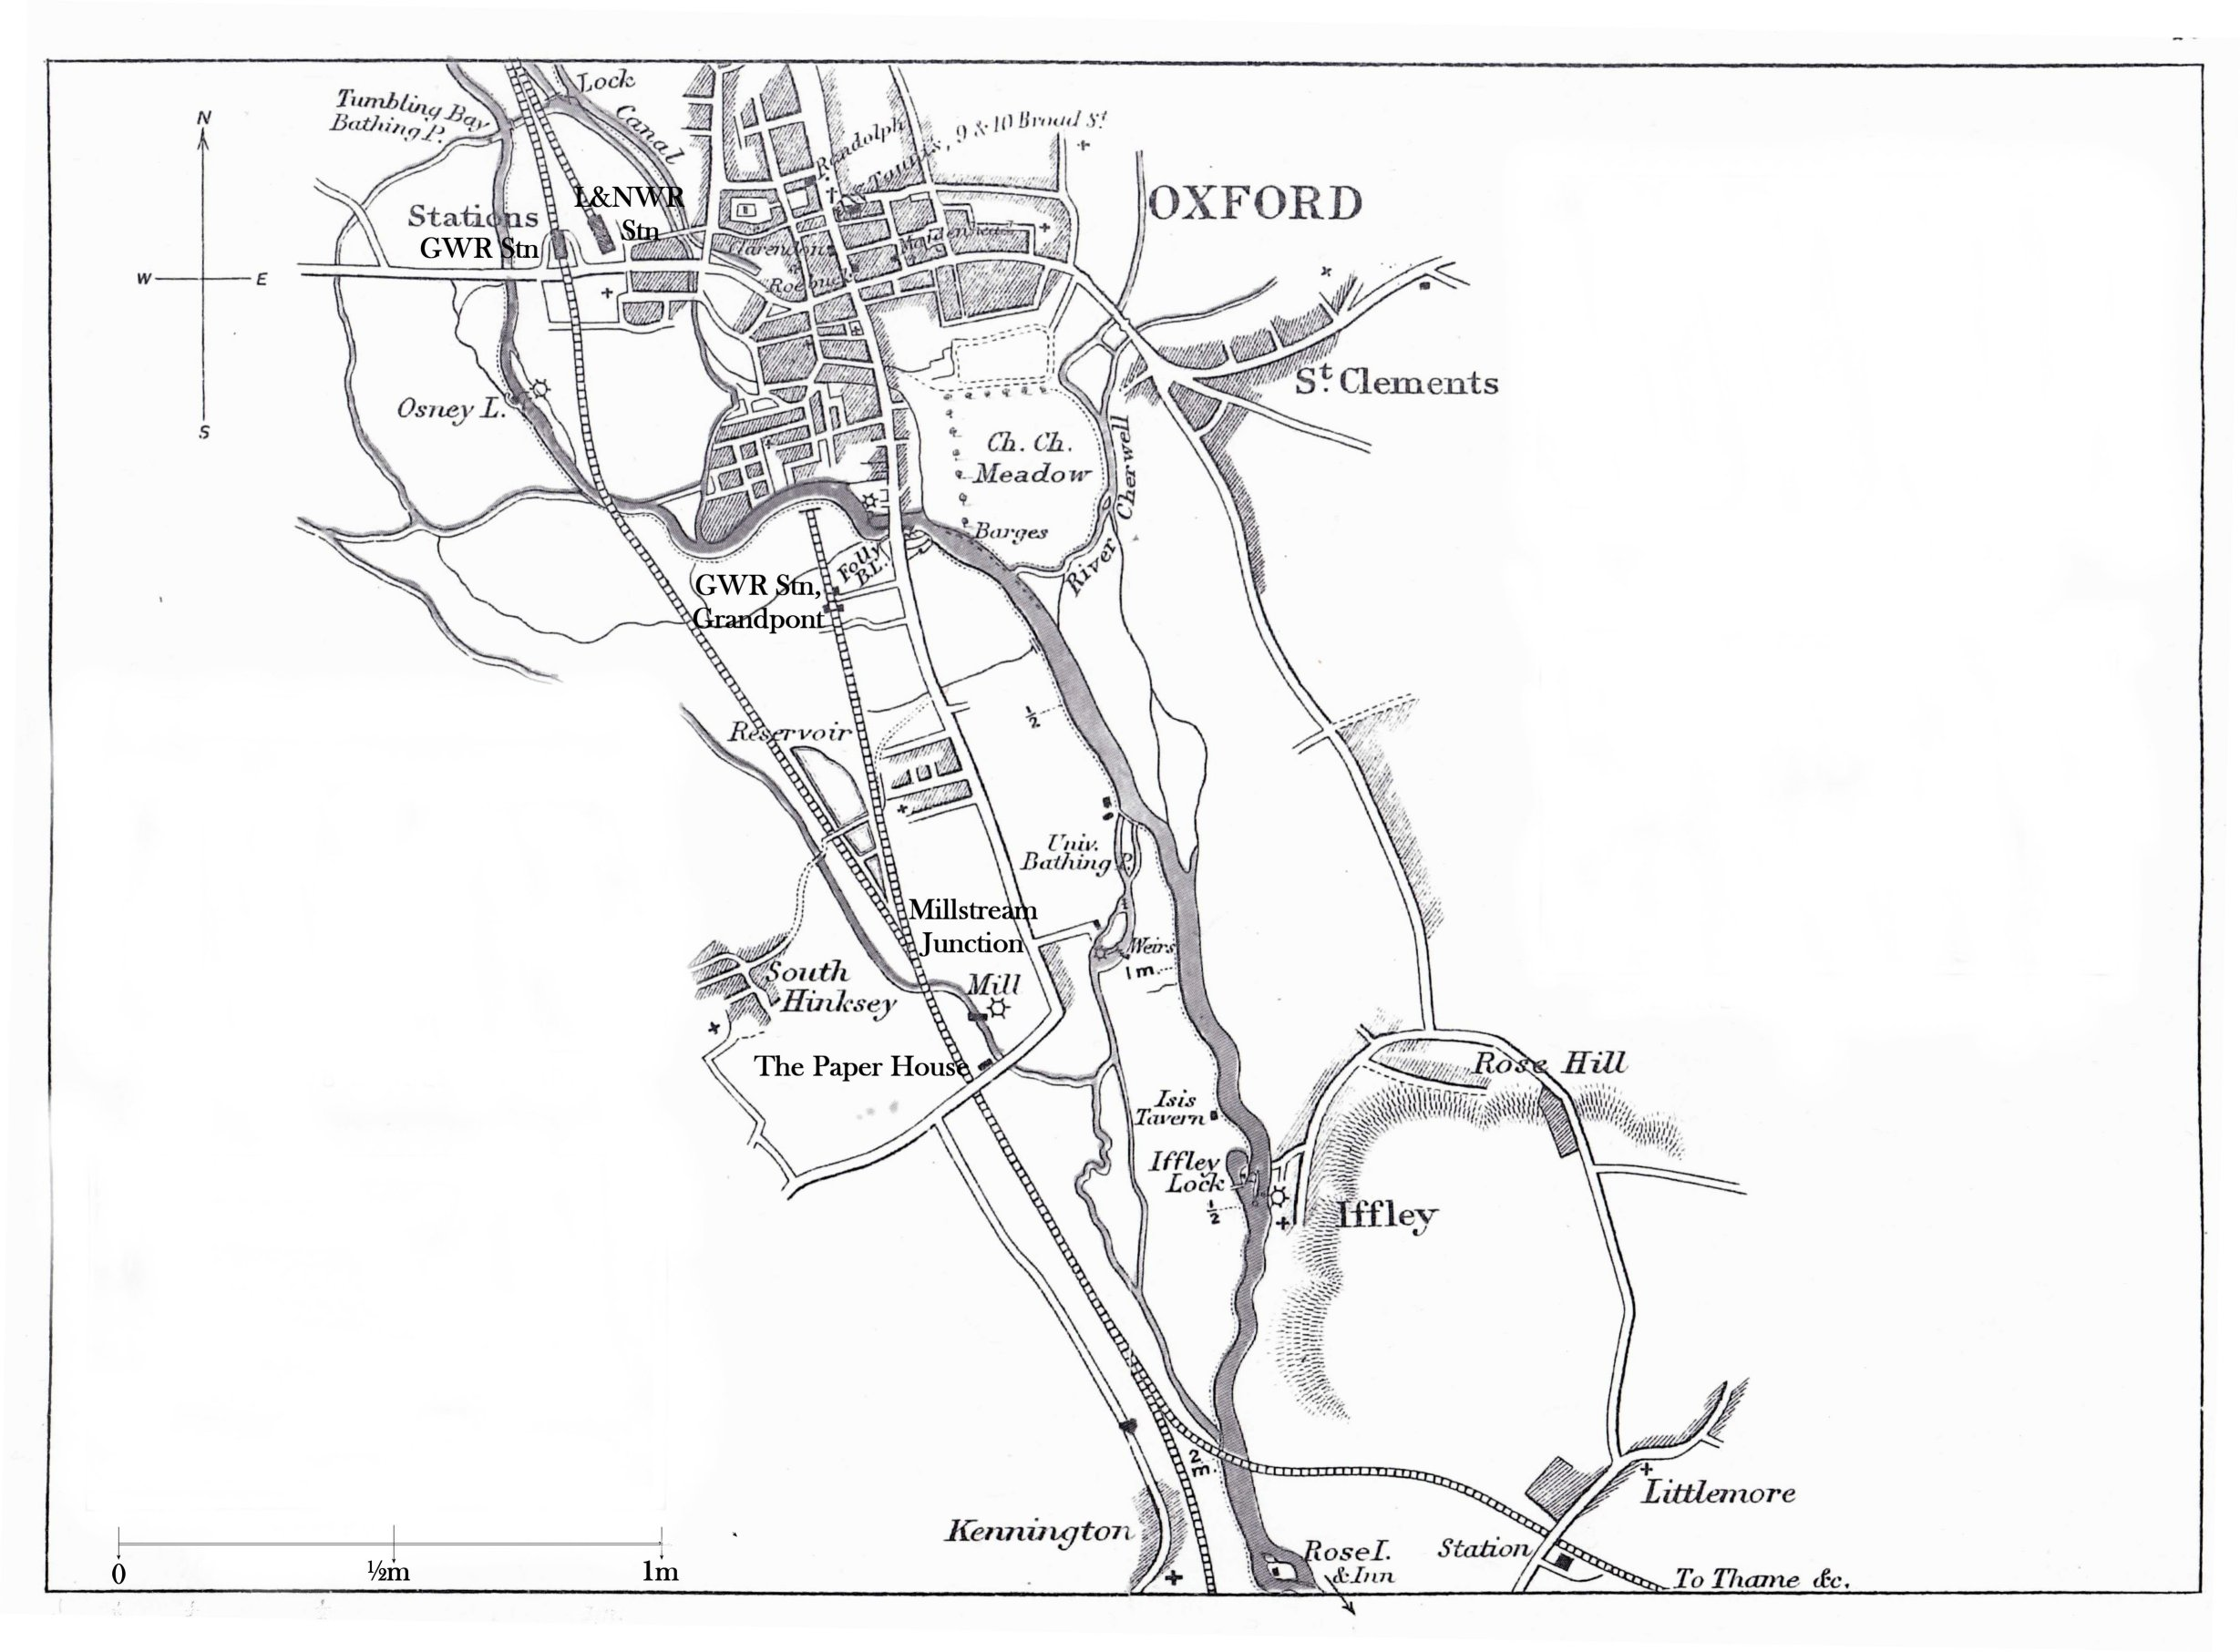 Taunt map of Thames in Oxford 1879 with additional labels smaller